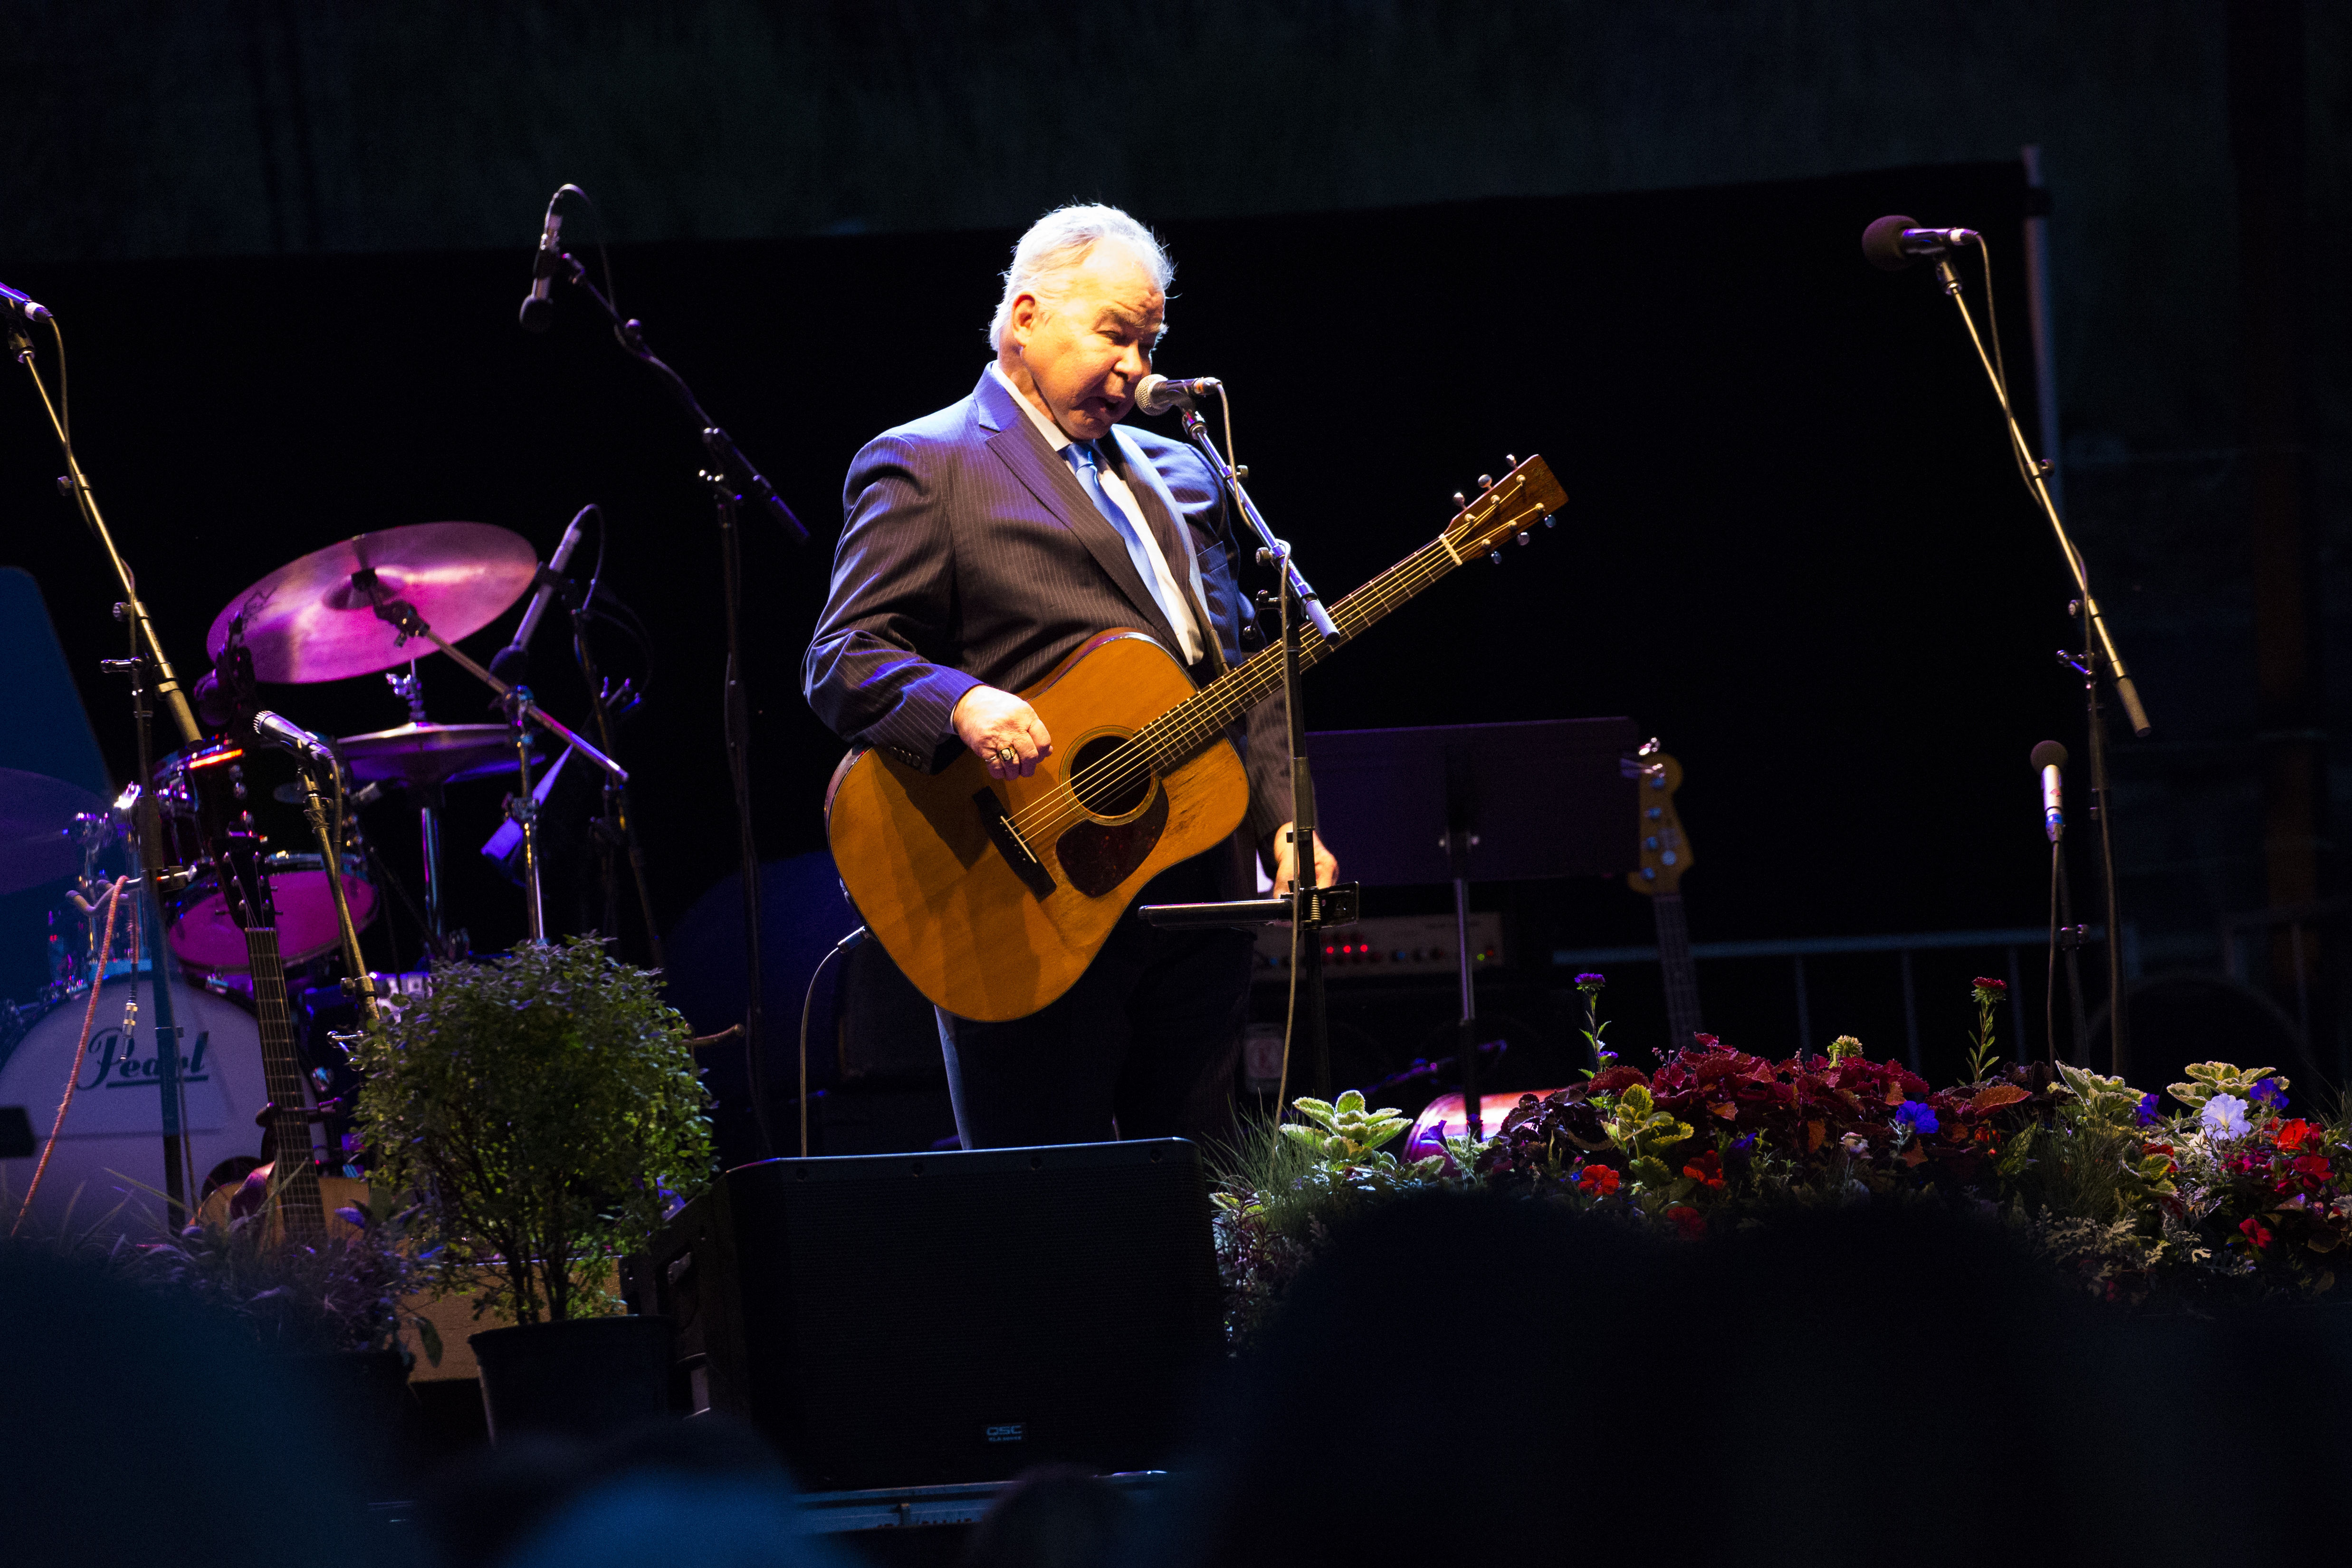 John Prine performing, August 25th, 2016. (Public Domain)